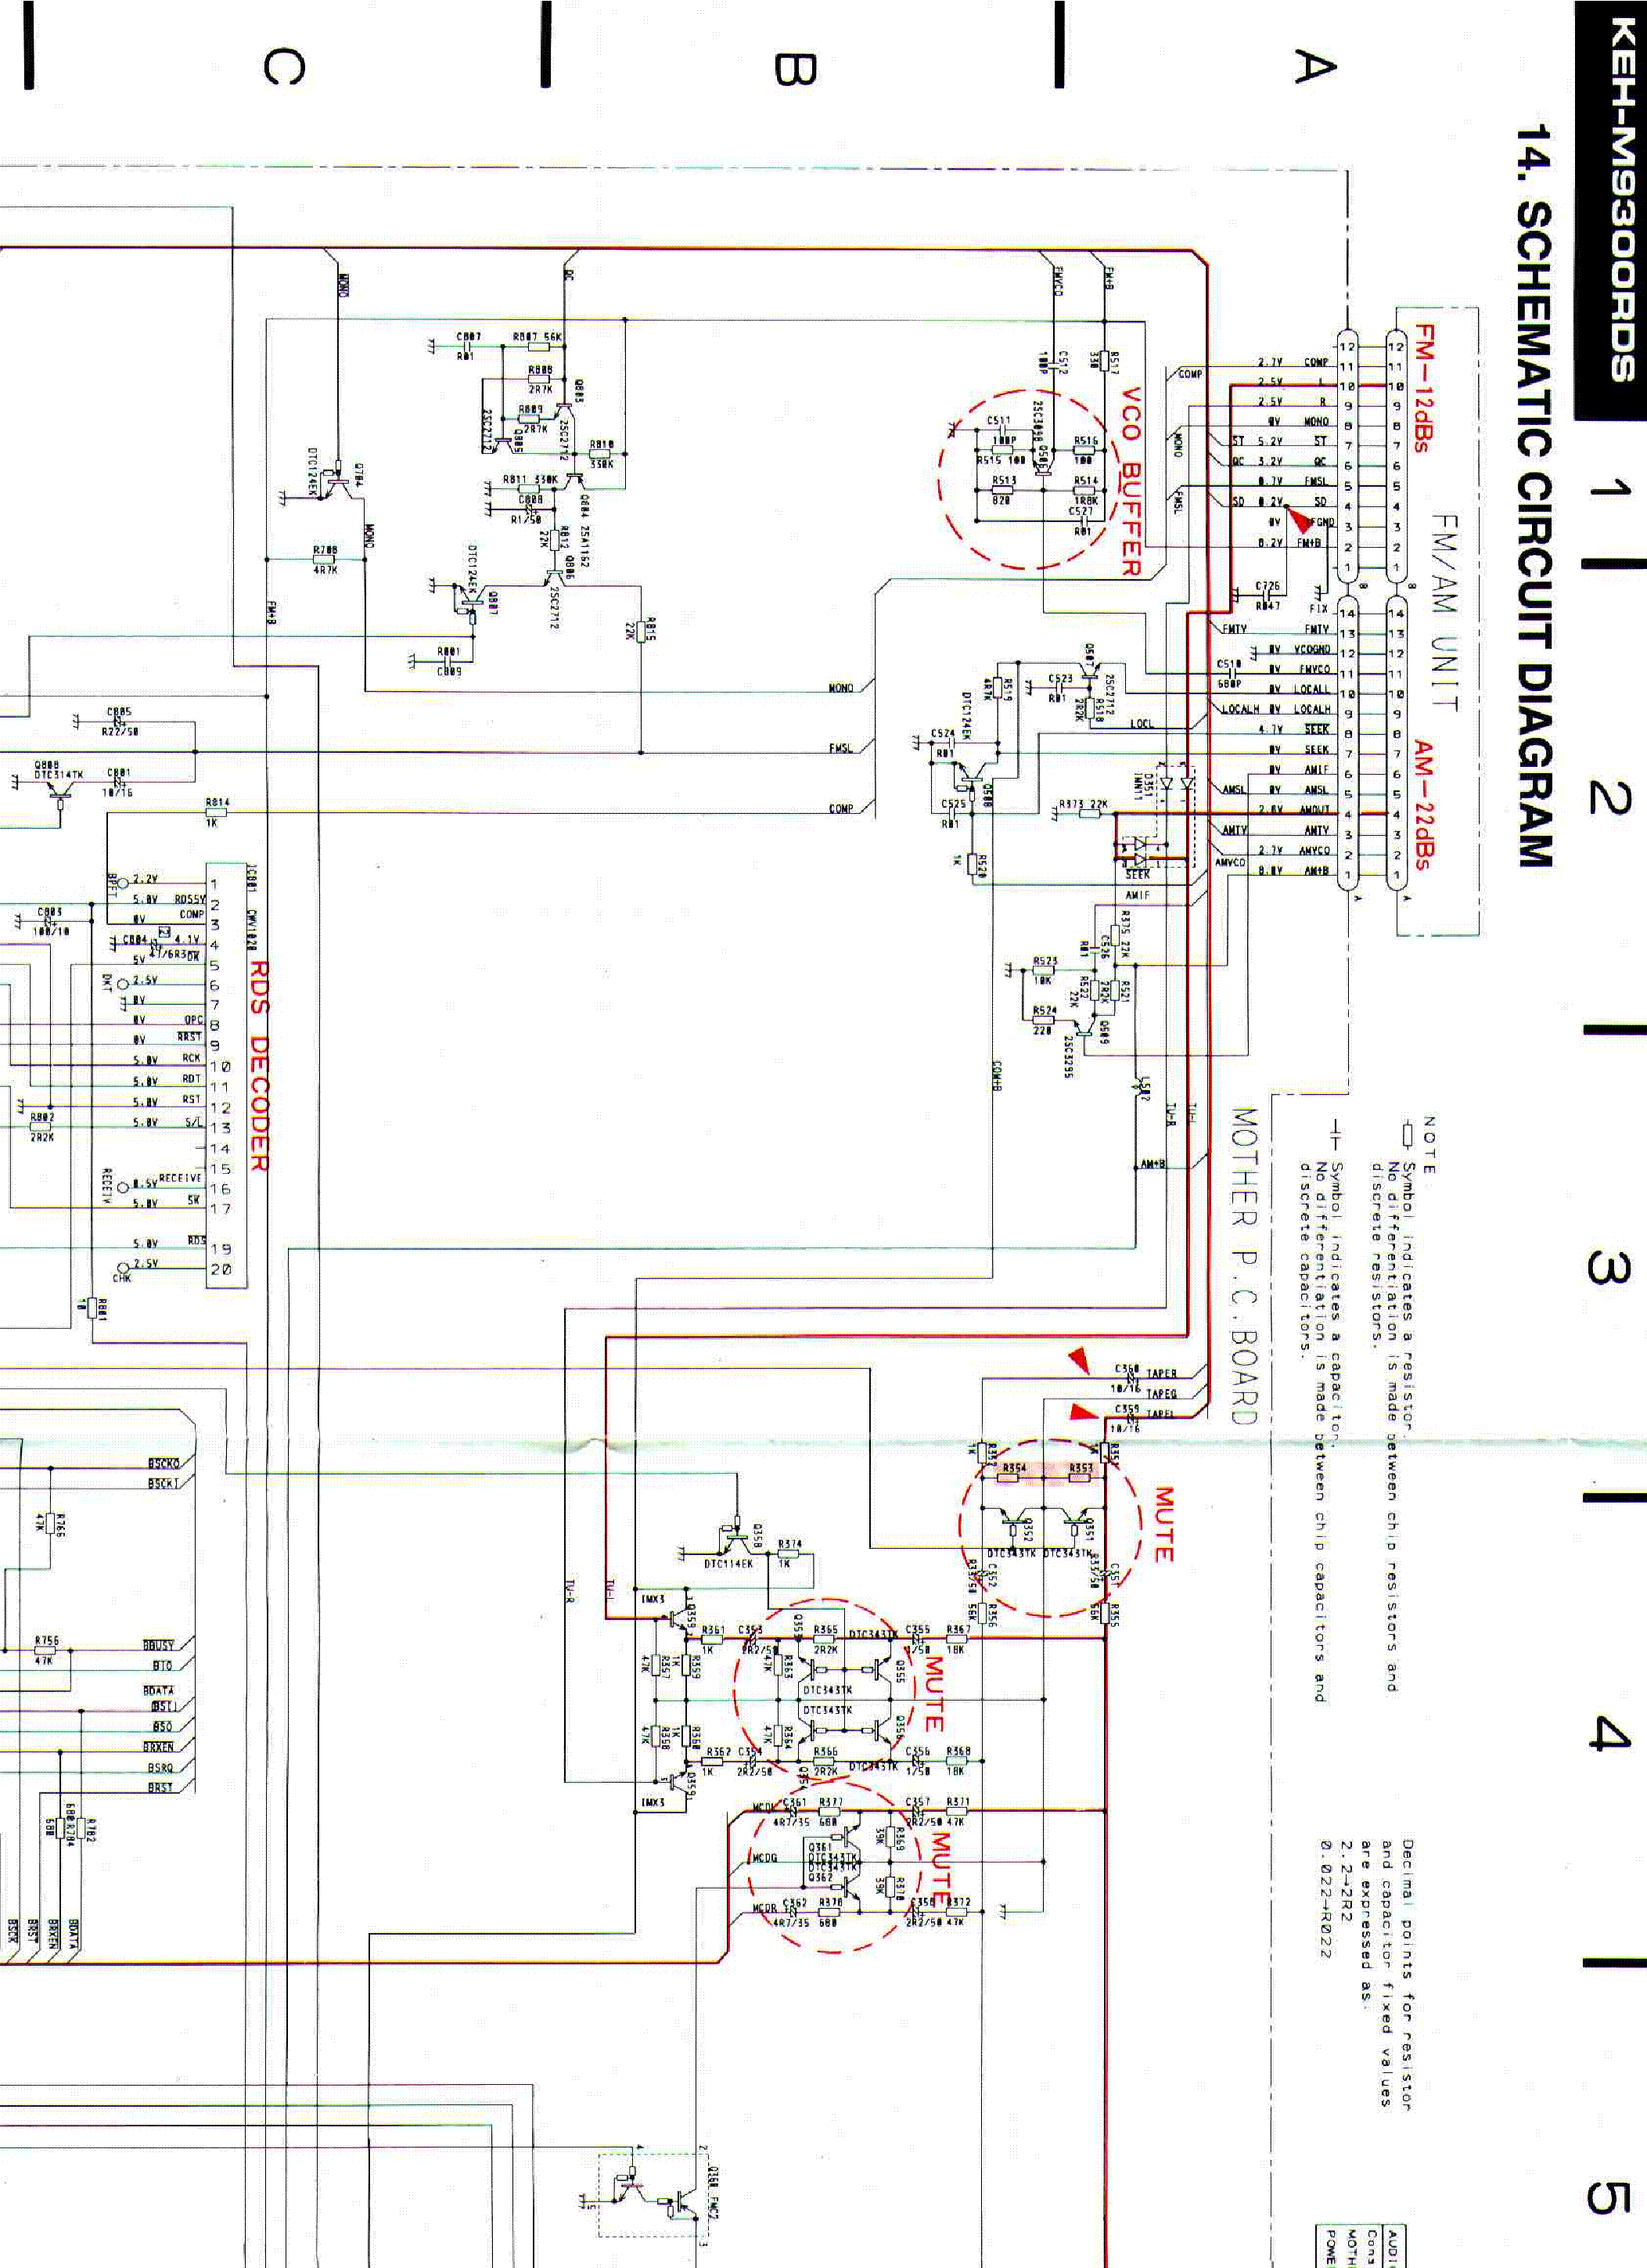 Pioneer Wiring Diagram Avx P Dvd on pioneer wiring installation, pioneer parts diagram, pioneer plugs diagram, pioneer stereo wiring,